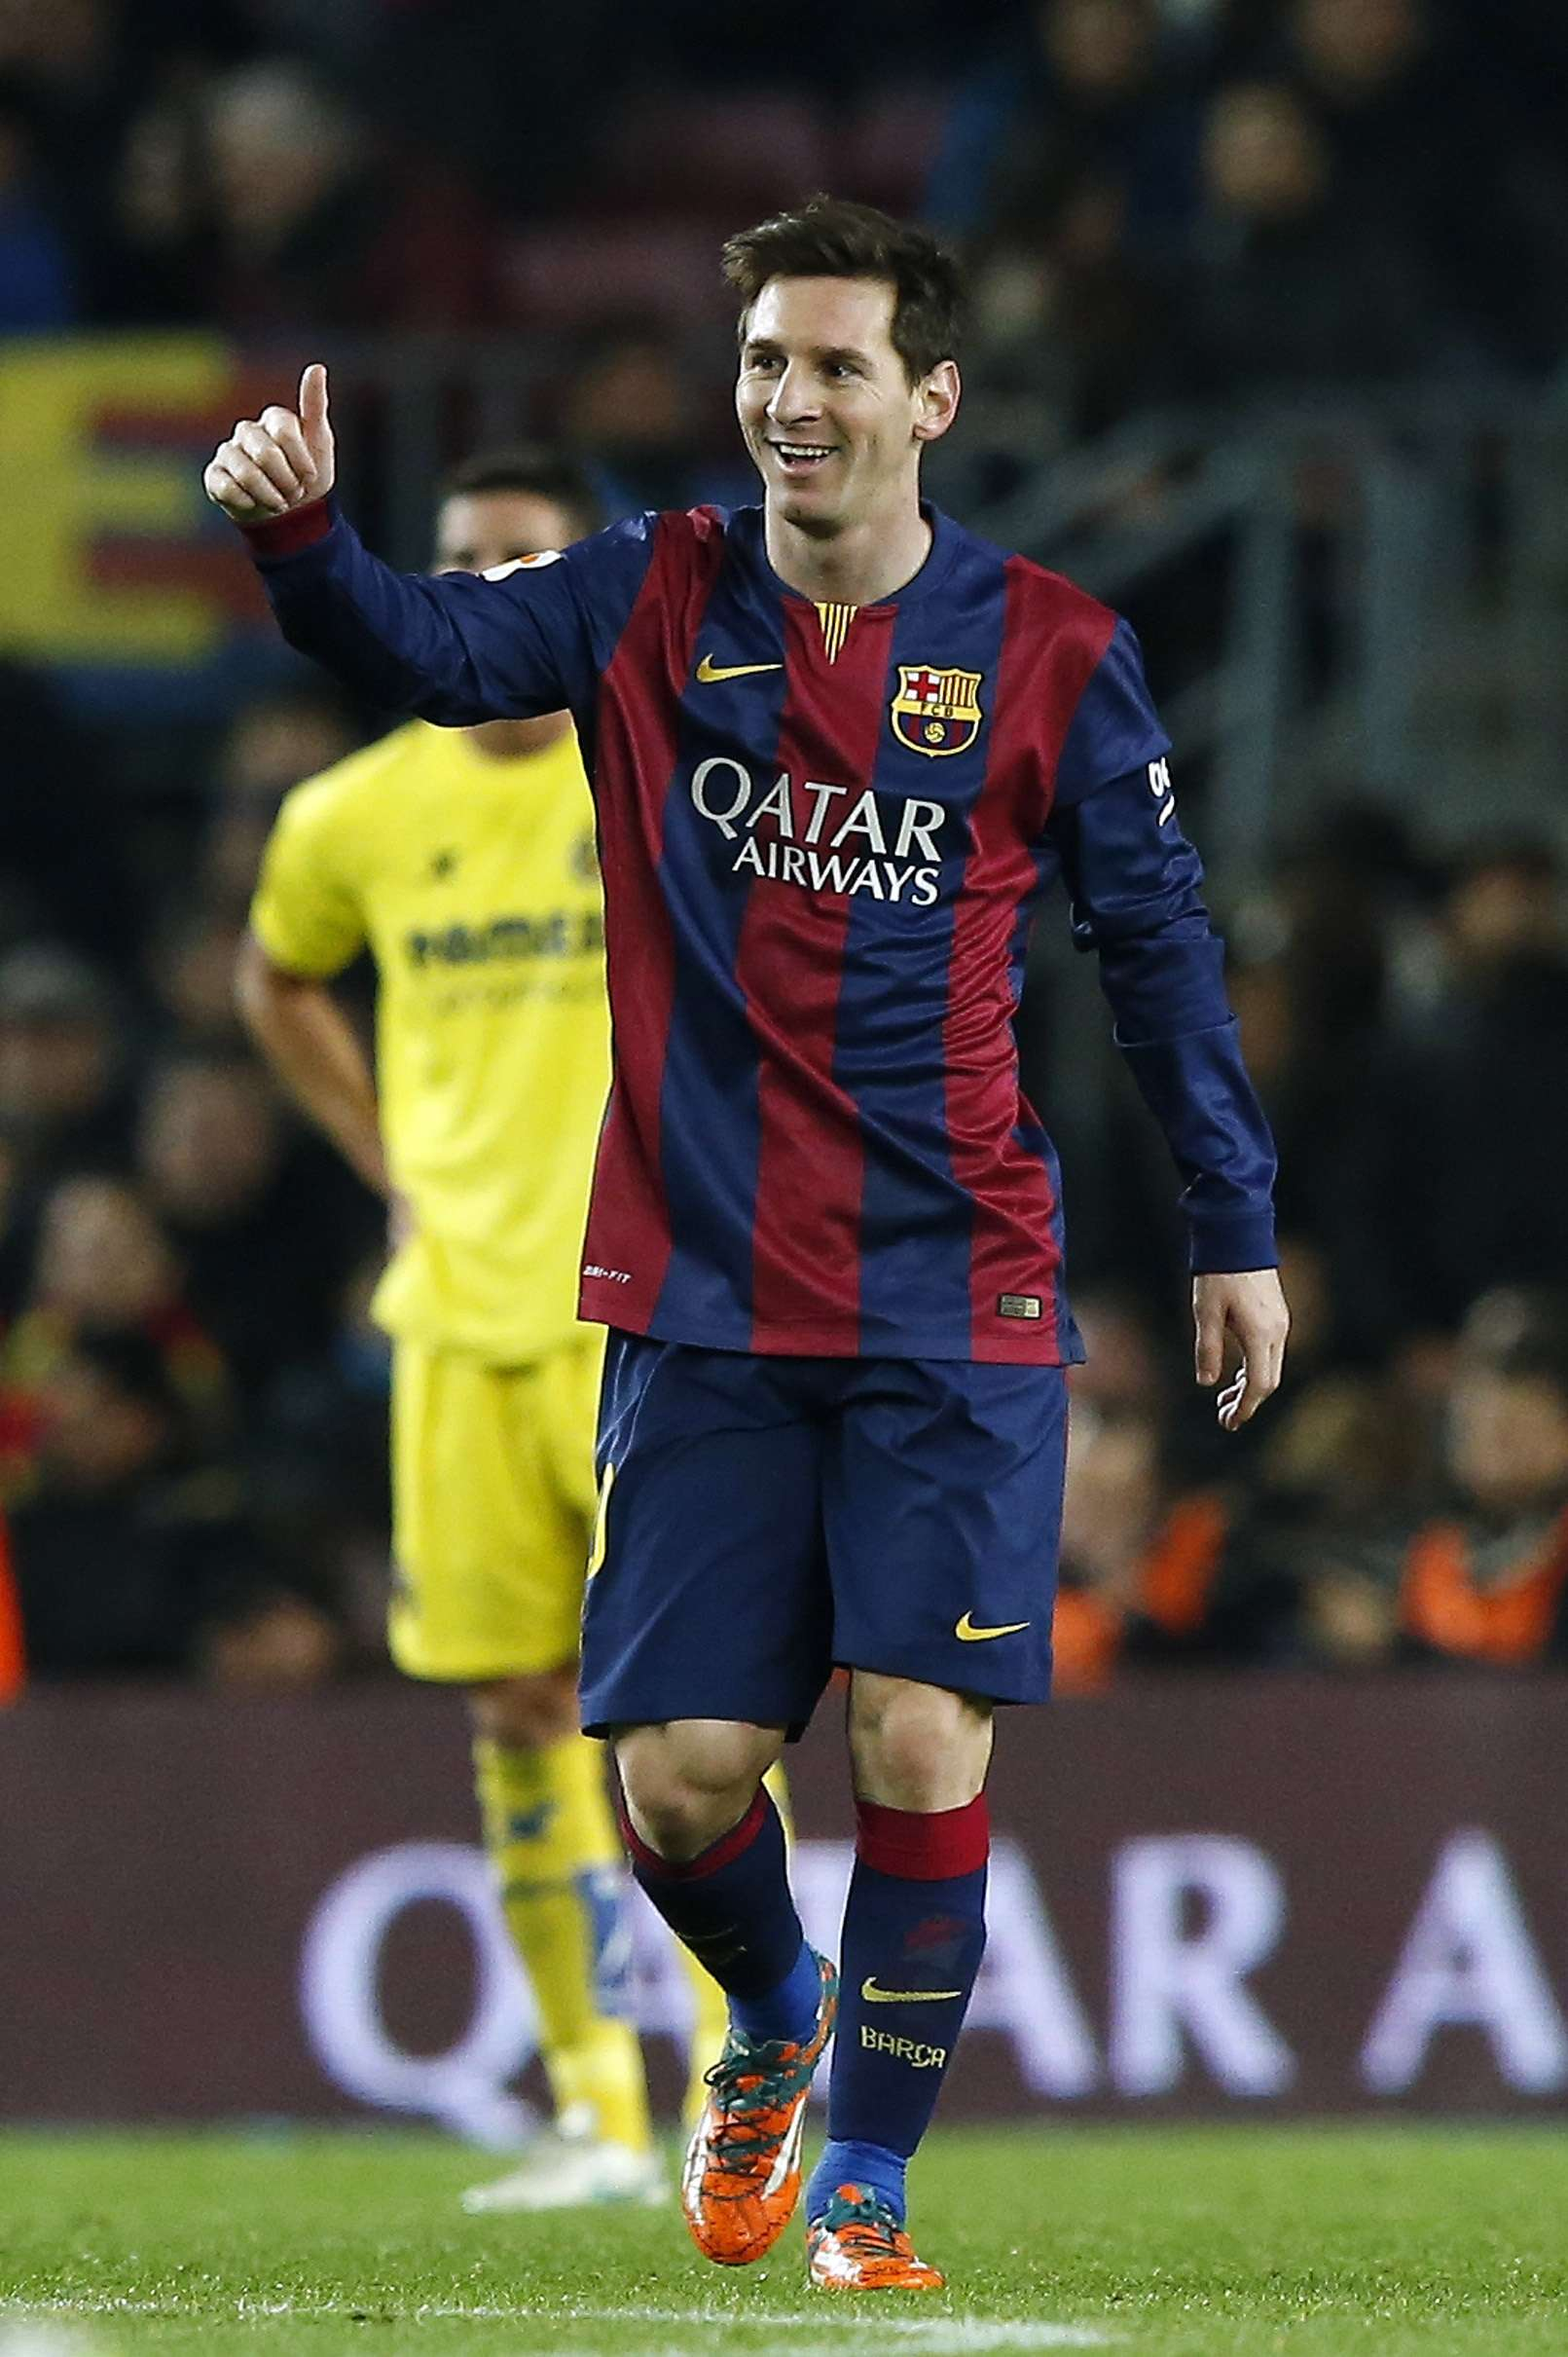 Barcelona's Lionel Messi celebrates his goal against Villarreal during their King's Cup semi-final first leg soccer match at Nou Camp stadium in Barcelona February 11, 2015. REUTERS/Gustau Nacarino (SPAIN - Tags: SPORT SOCCER) Foto: GUSTAU NACARINO/REUTERS